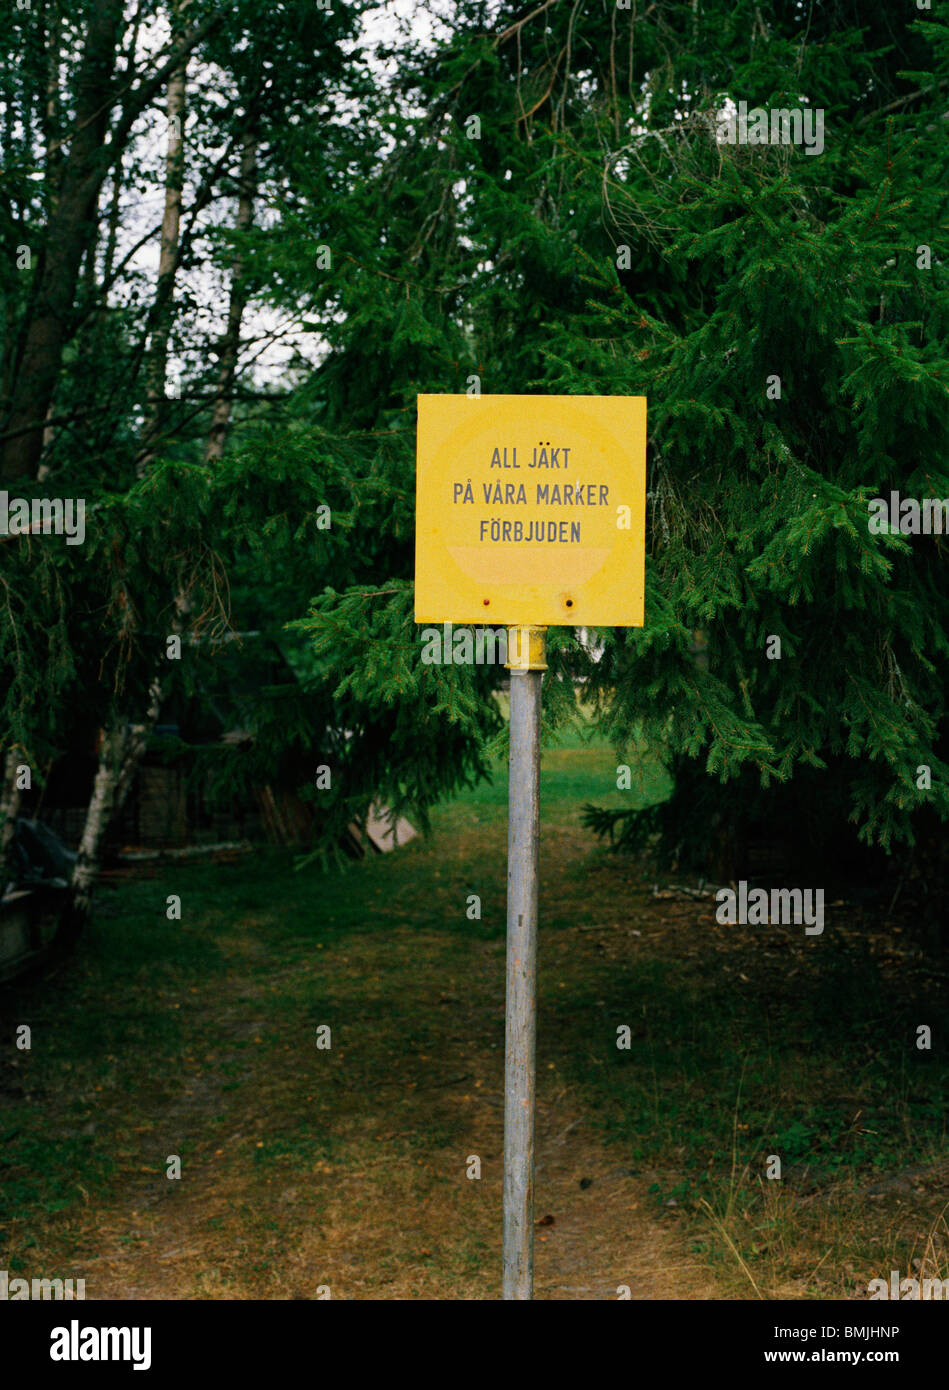 A yellow sign in front of a fir, Sweden. - Stock Image